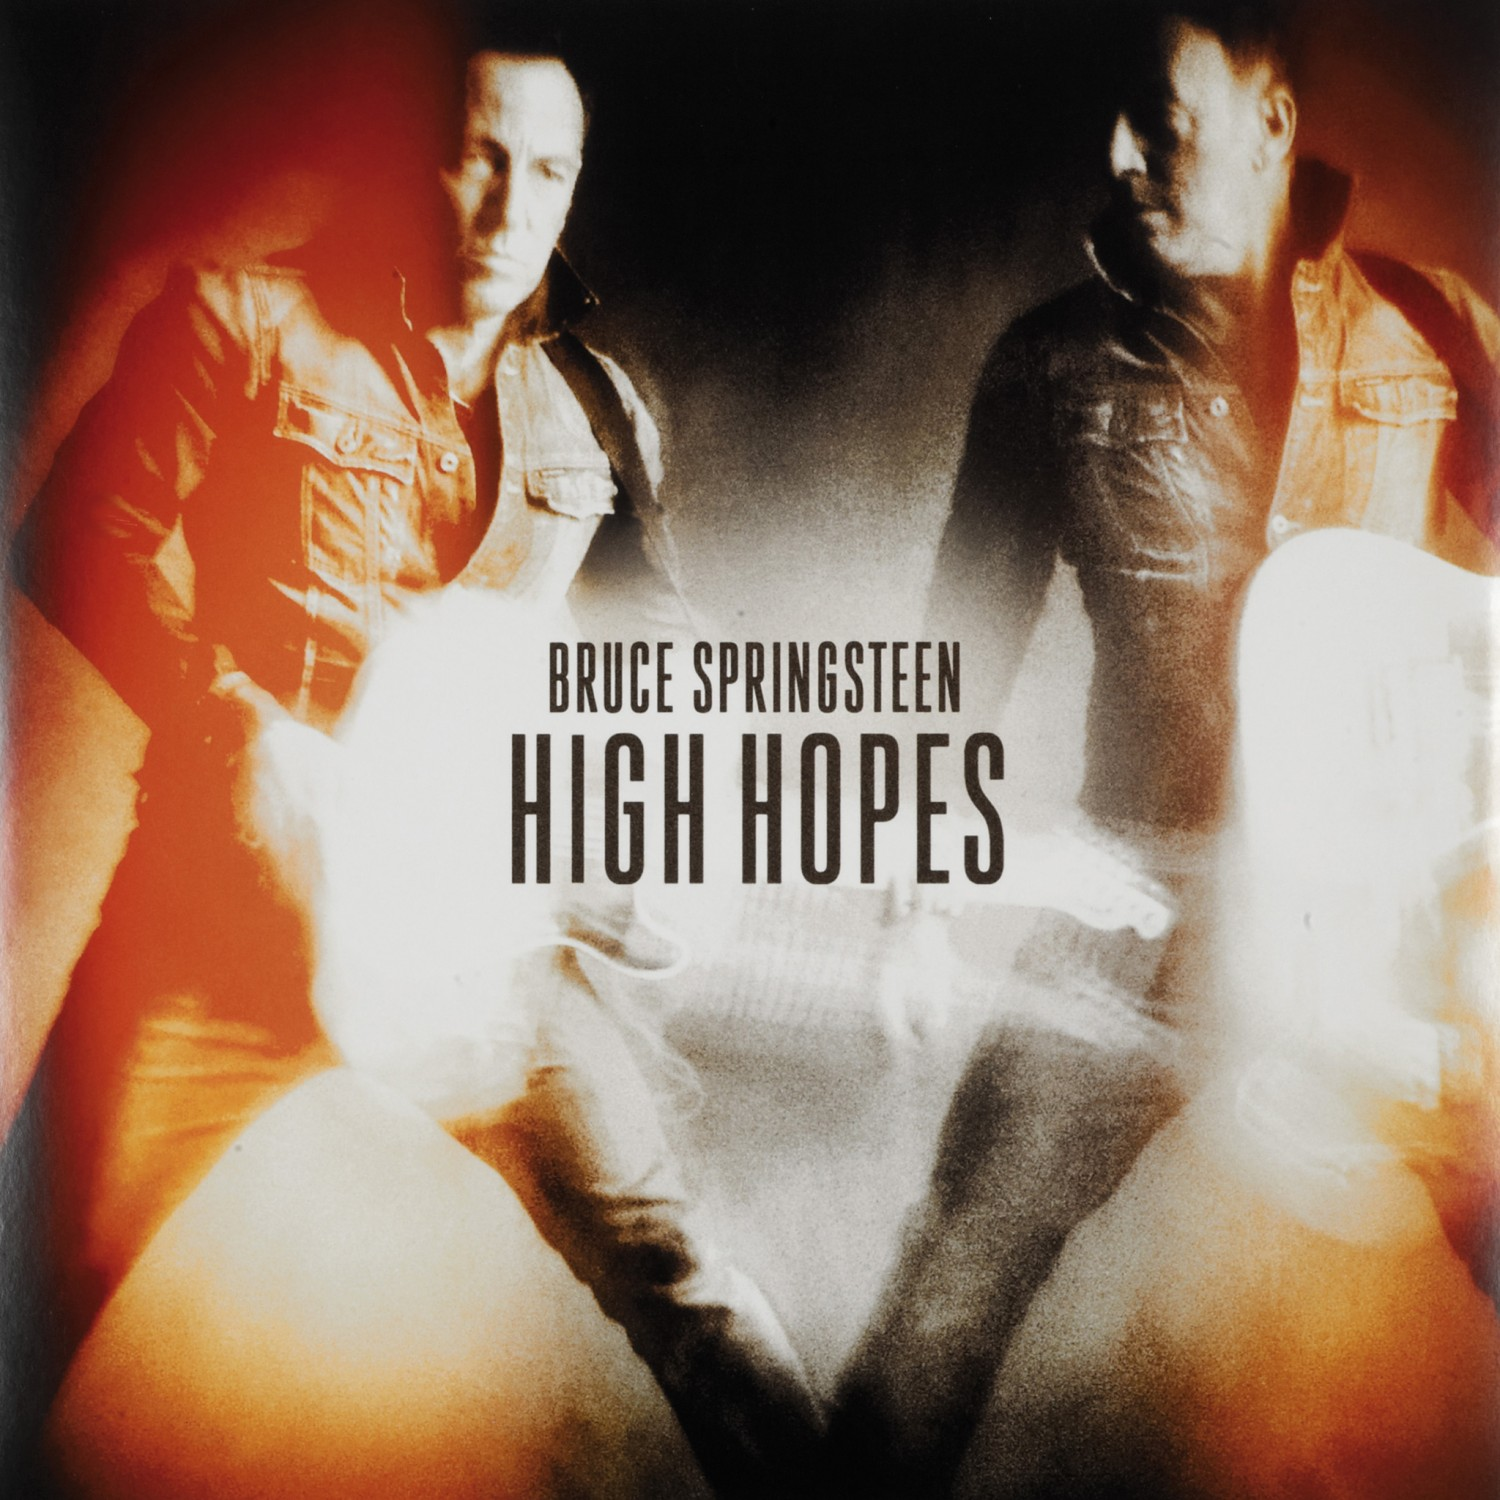 Schallplatte Bruce Springsteen - High Hopes (Colambia) im Test, Bild 1